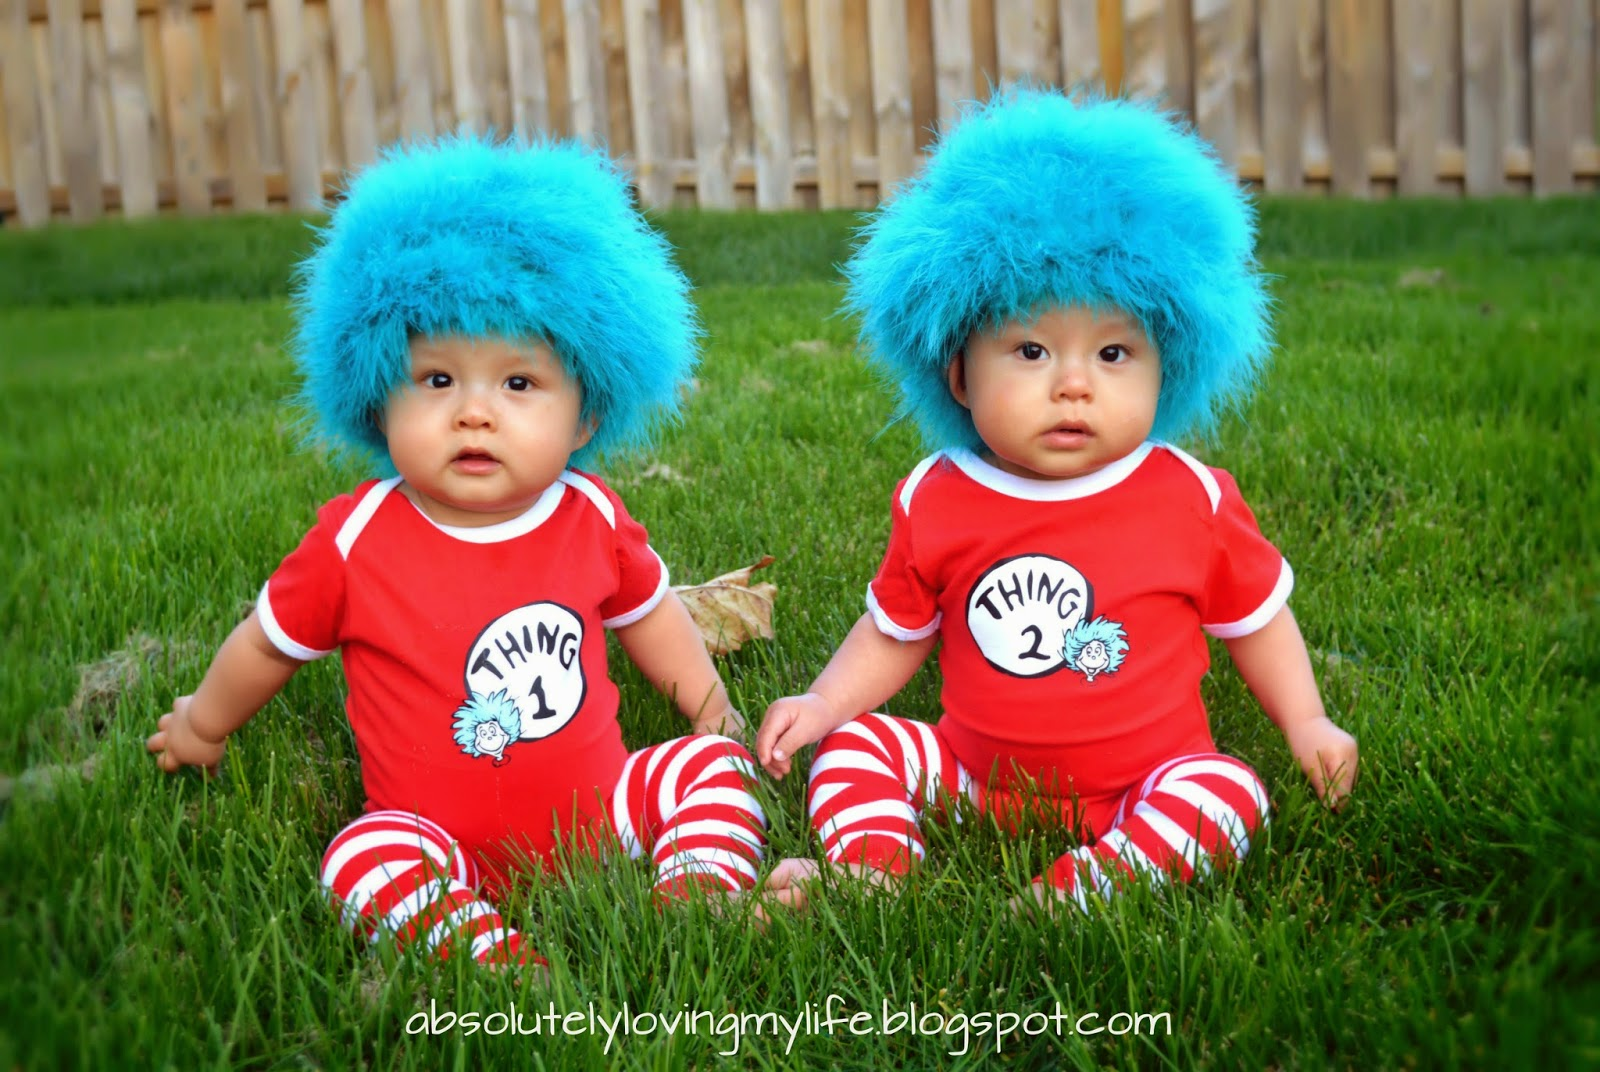 DIY Thing 1 and Thing 2 Baby Costumes  sc 1 st  Loving Life & Loving Life: DIY Thing 1 and Thing 2 Baby Costumes